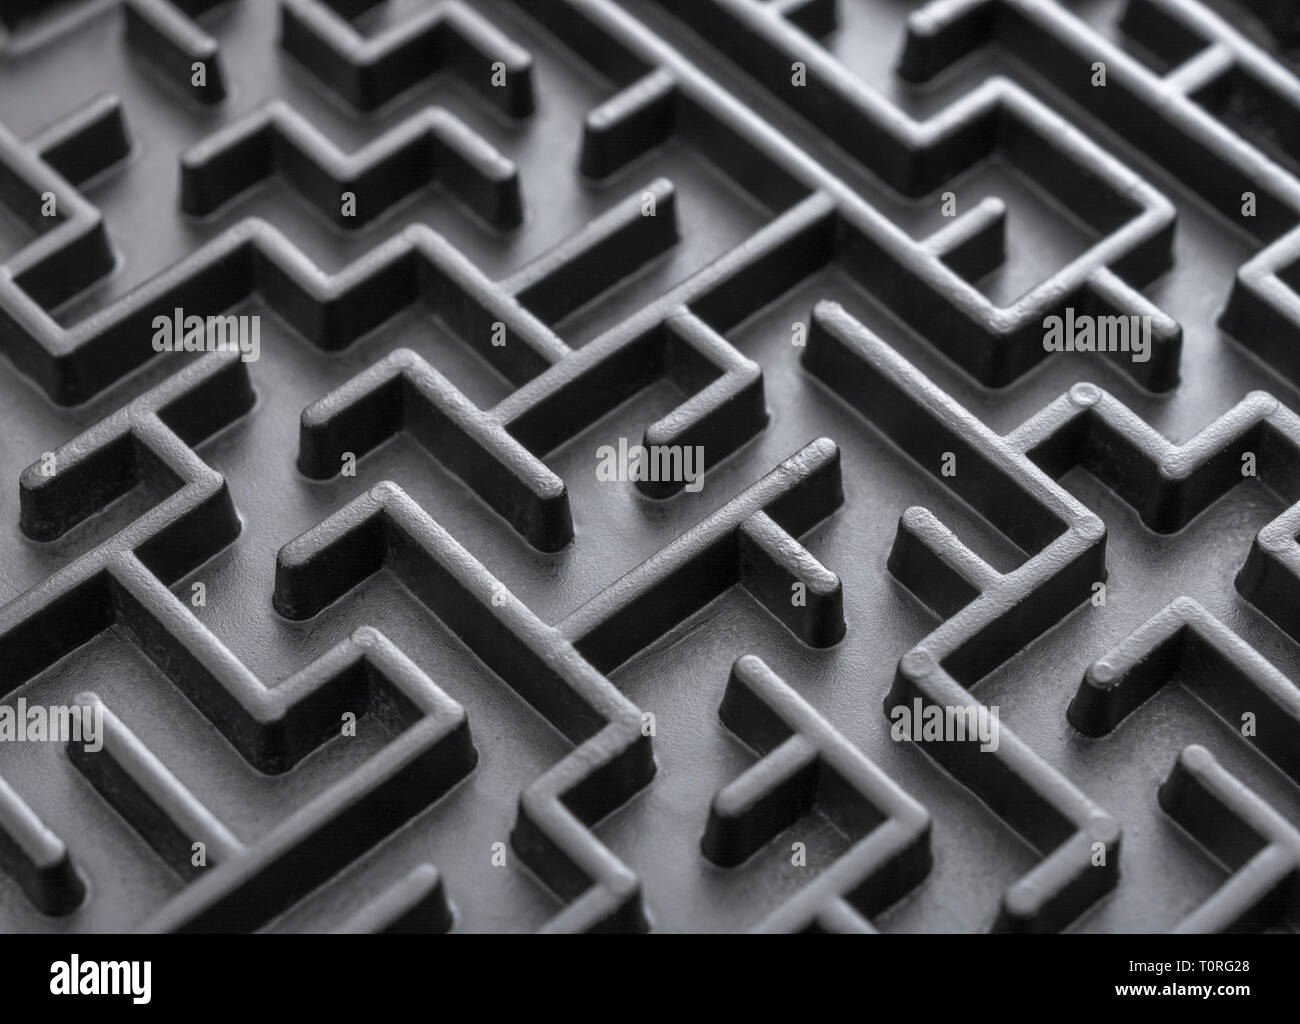 Macro shot of small toy maze painted black. Metaphor for complex, getting lost, navigating, problem solving, unreachable goals, Brexit talks. - Stock Image